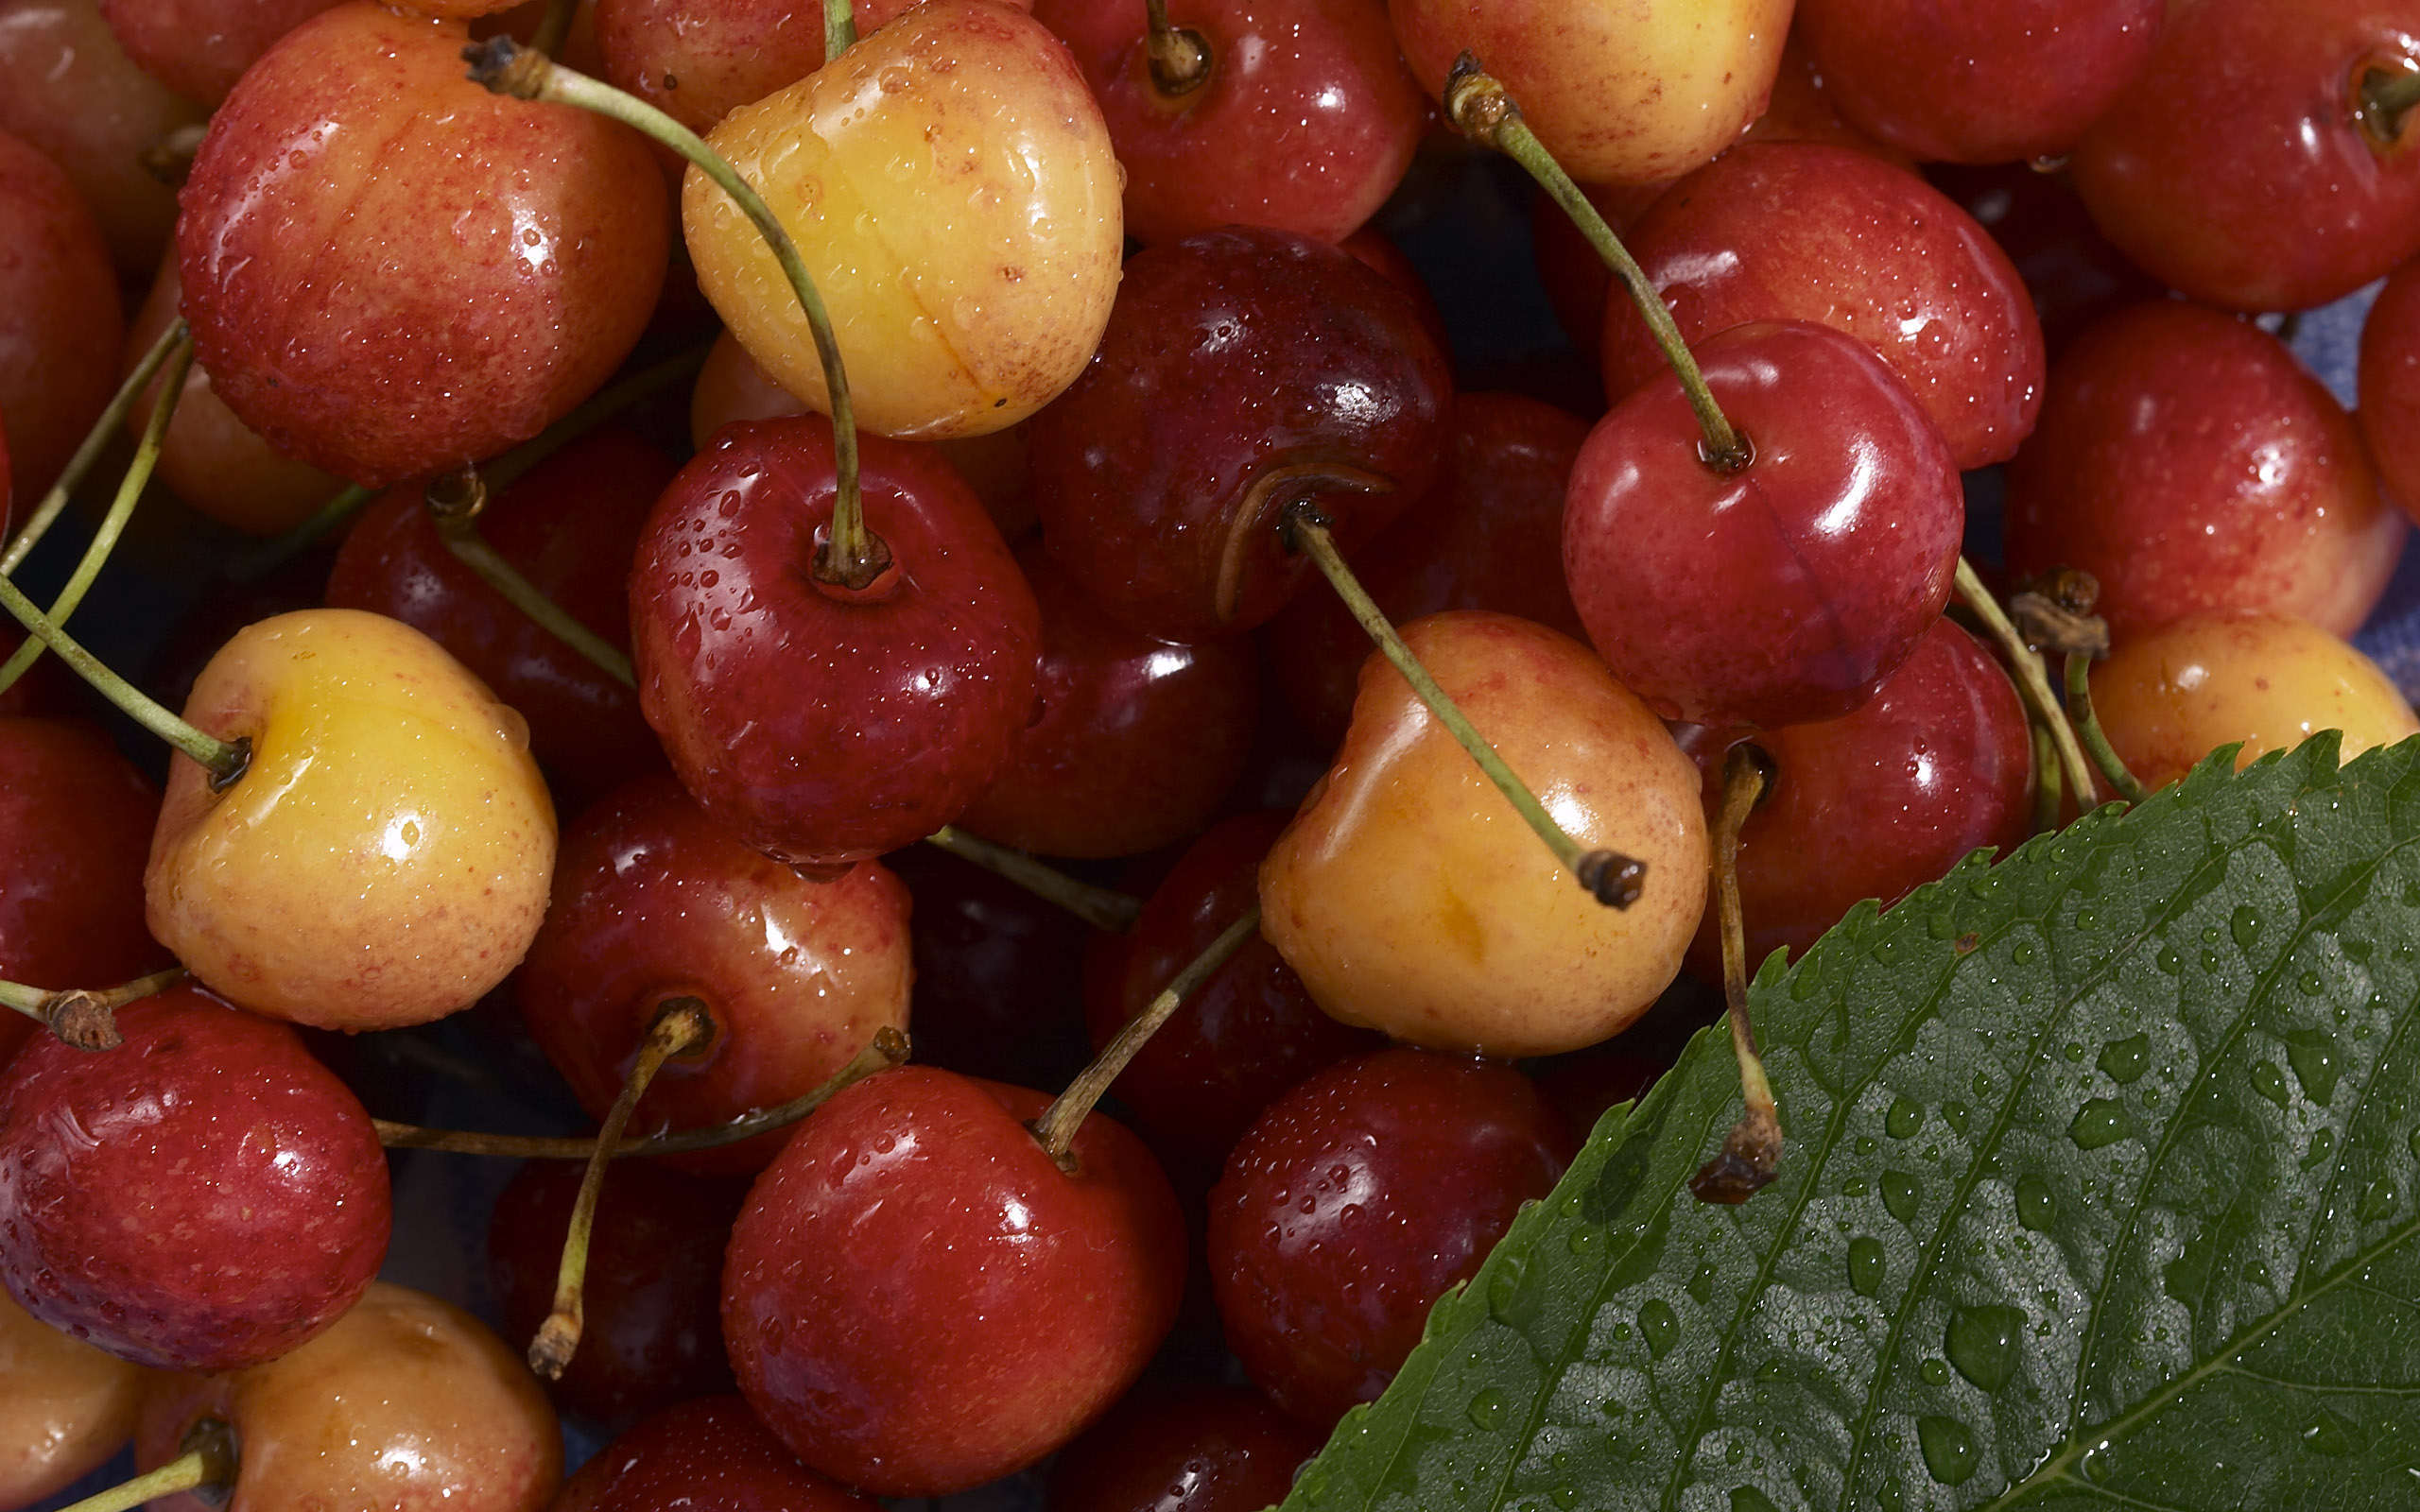 Awesome-Cherries-wallpaper-wp4603909